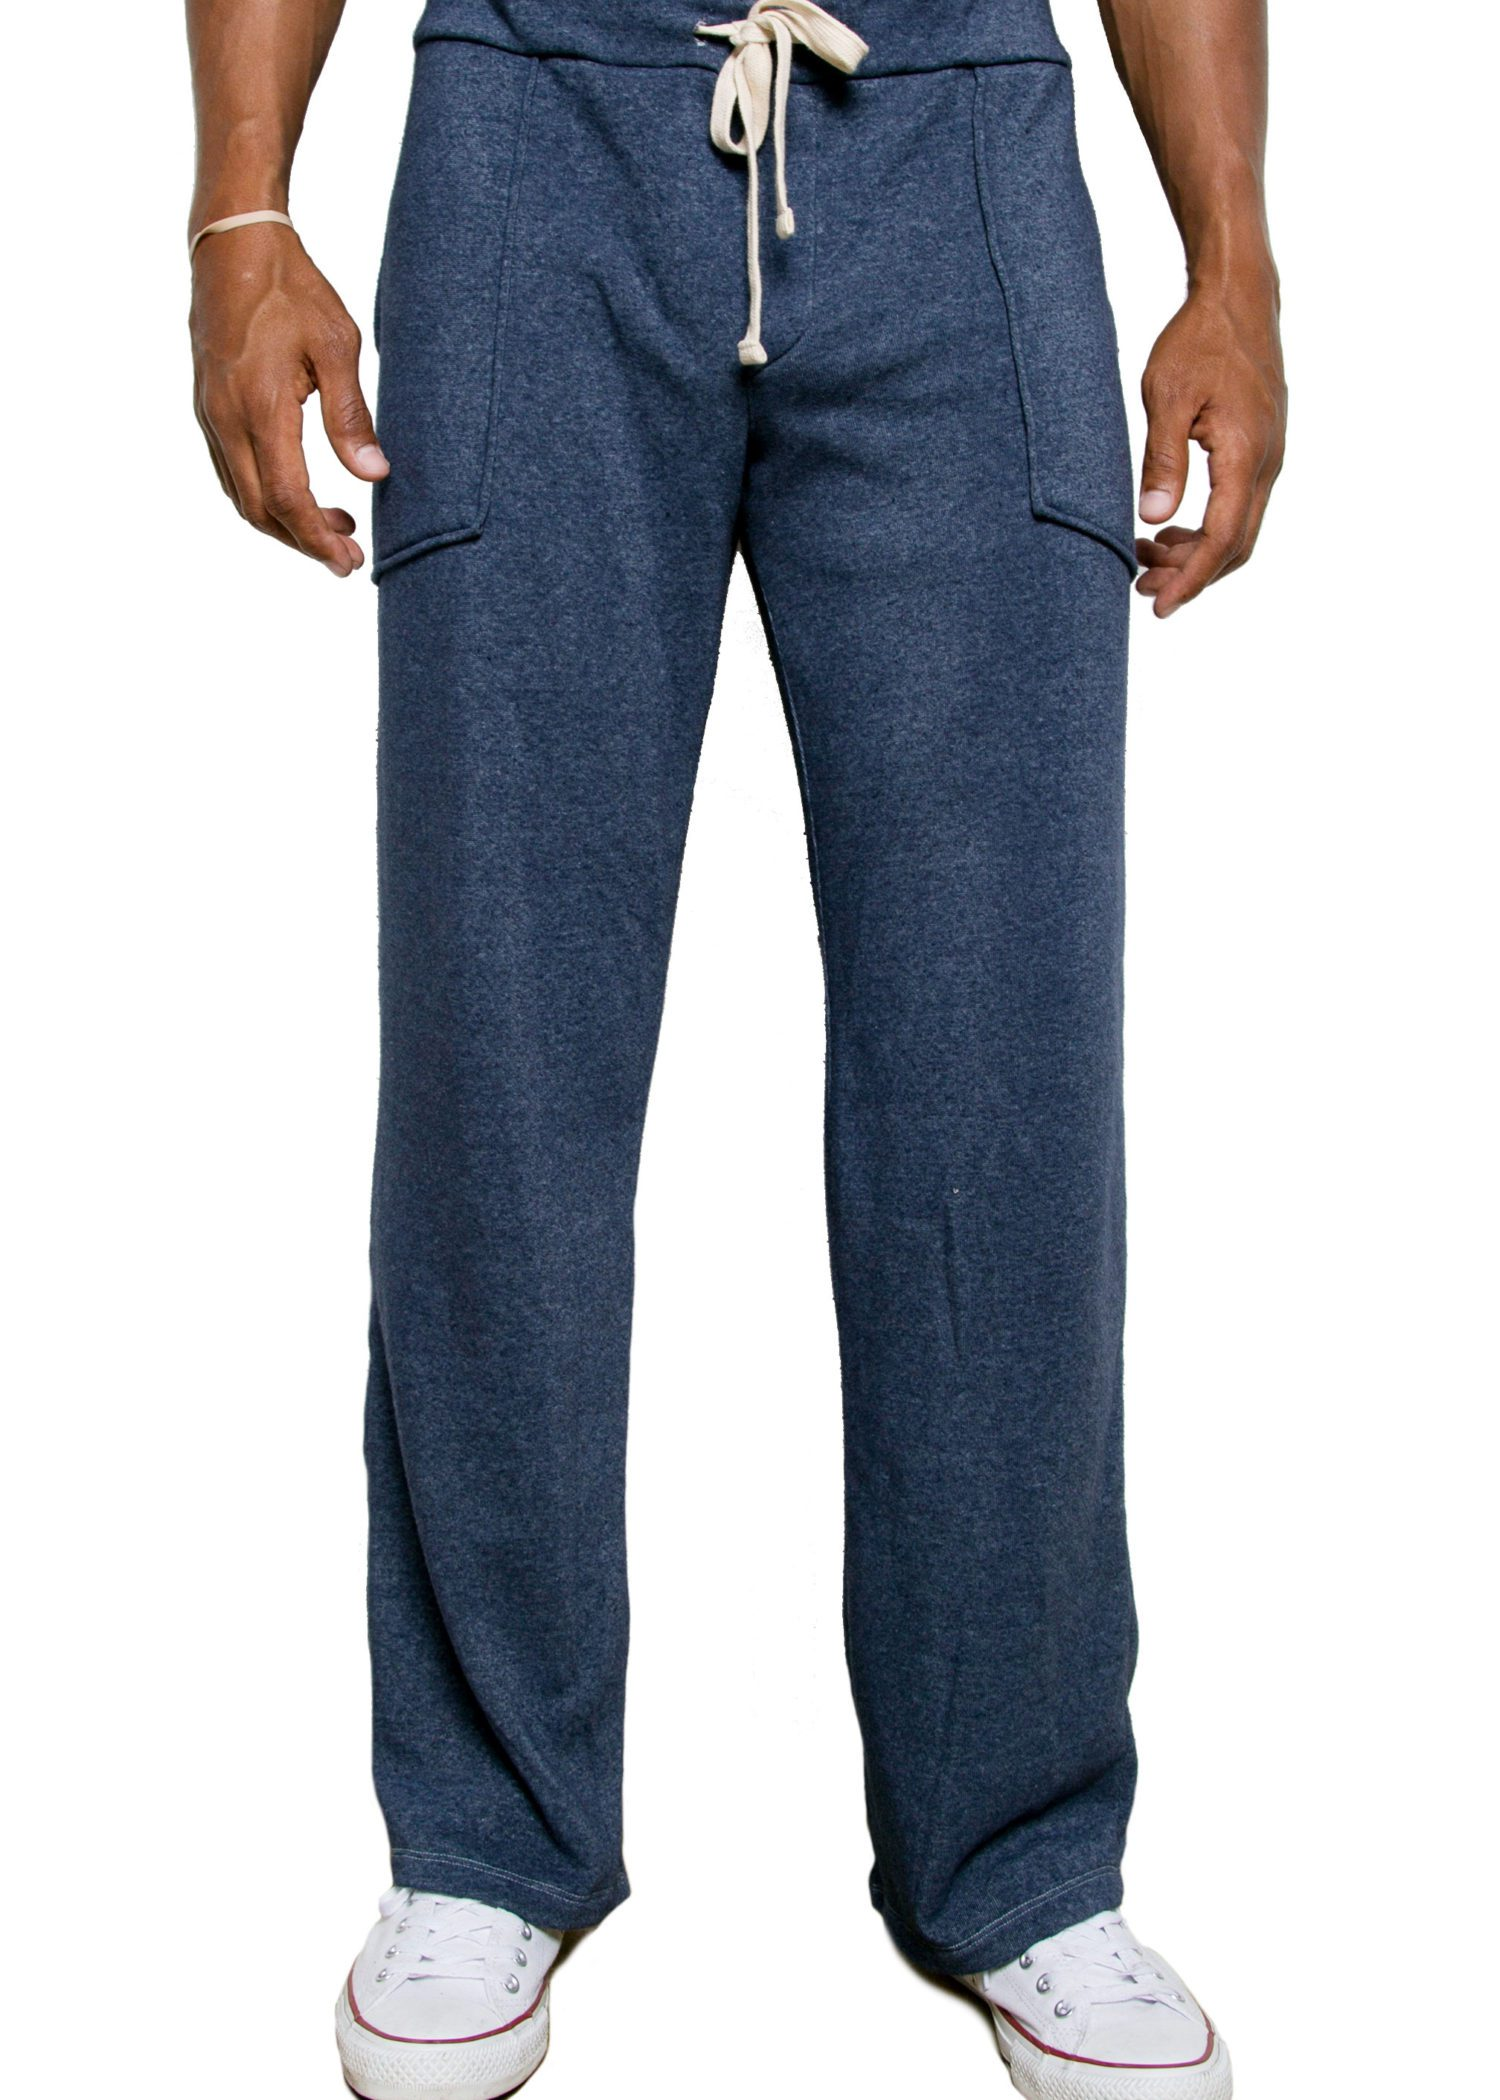 Relaxed-Fit Custom Sweatpant for Men